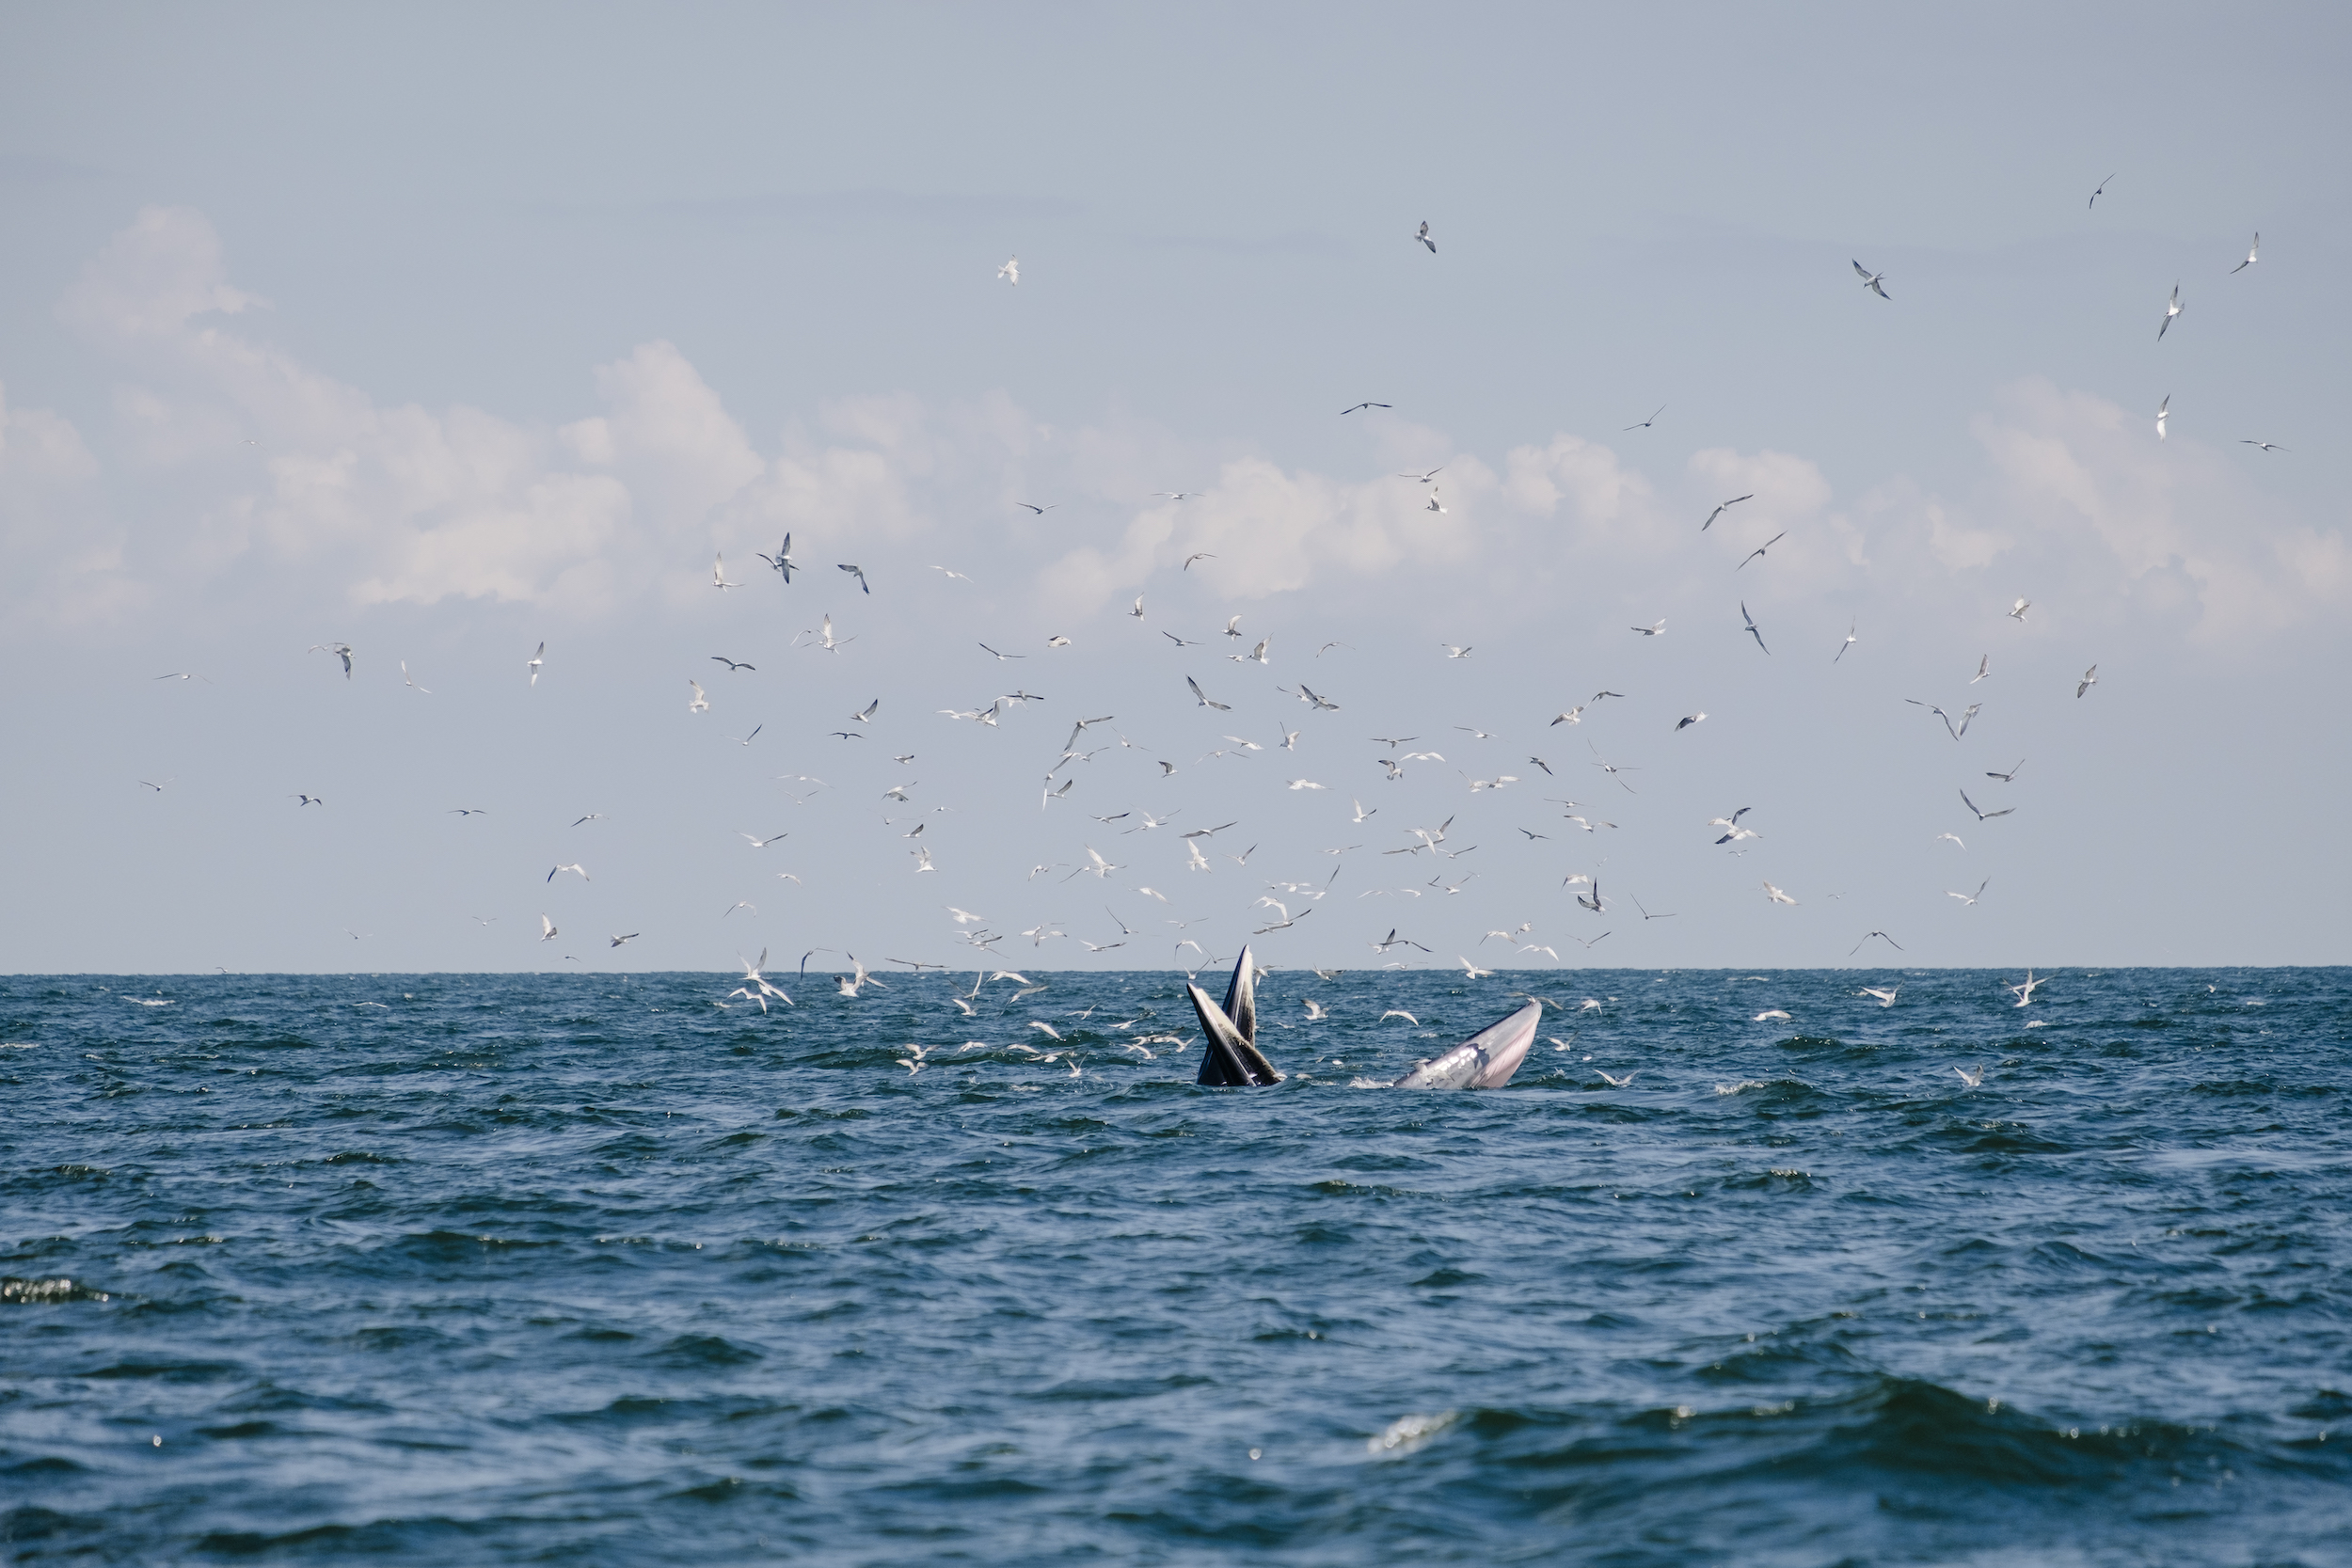 A whale breaking the surface surrounded by seagulls